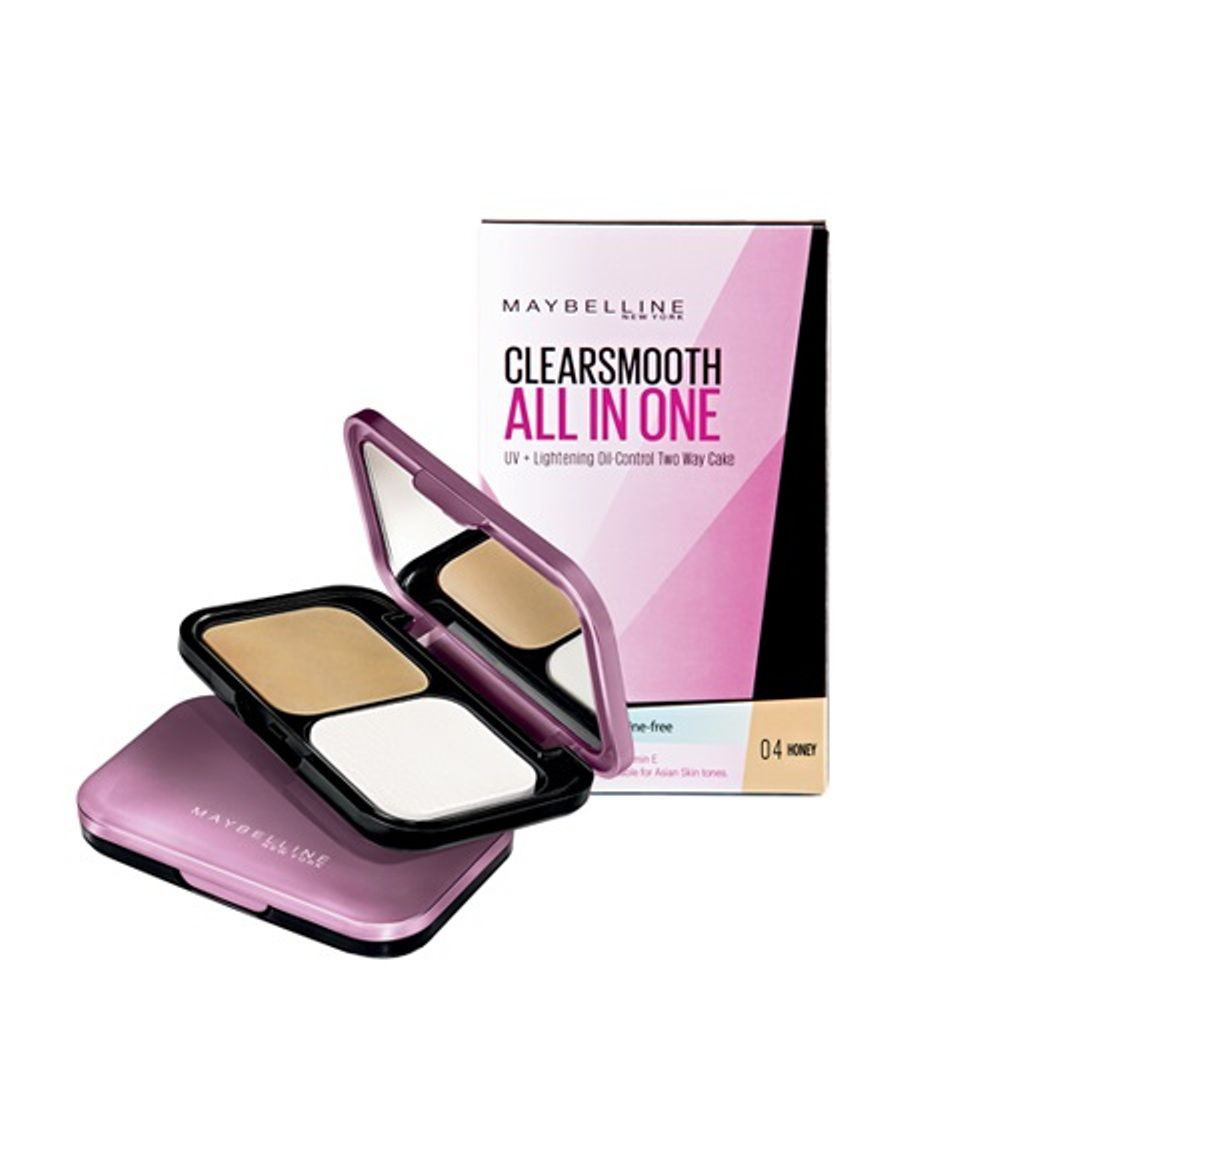 ... Maybelline ClearSmooth All In One Pressed Powder 04 Honey 04 Honey SPF  32 9 gm